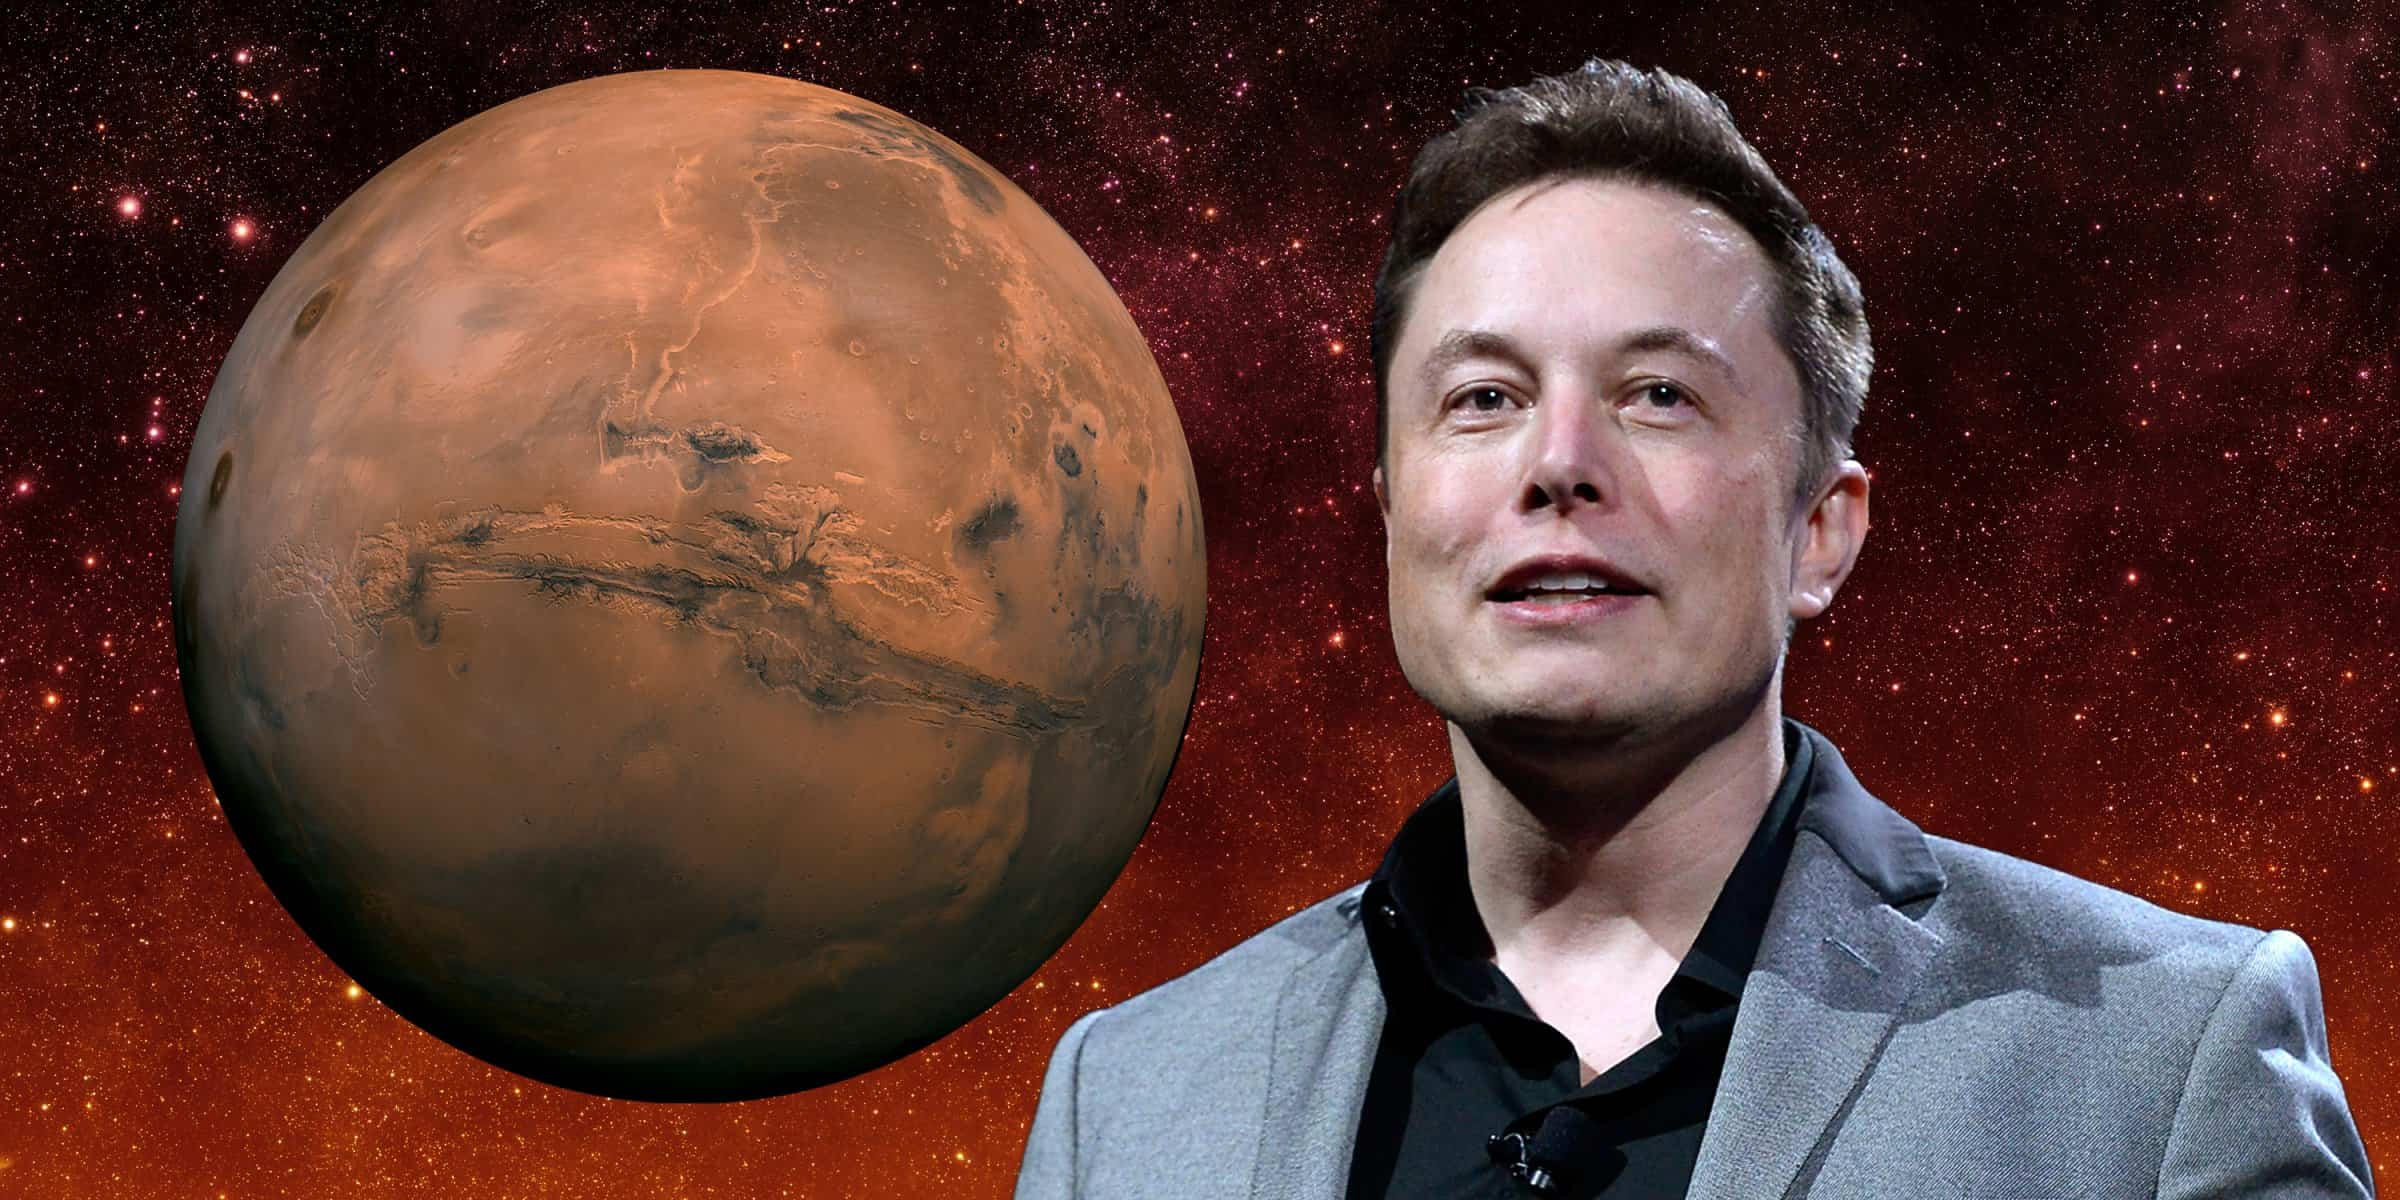 elon-musk-mars-colonization-spacex-nasa-getty-shutterstock-business-insider-illustration-2×1